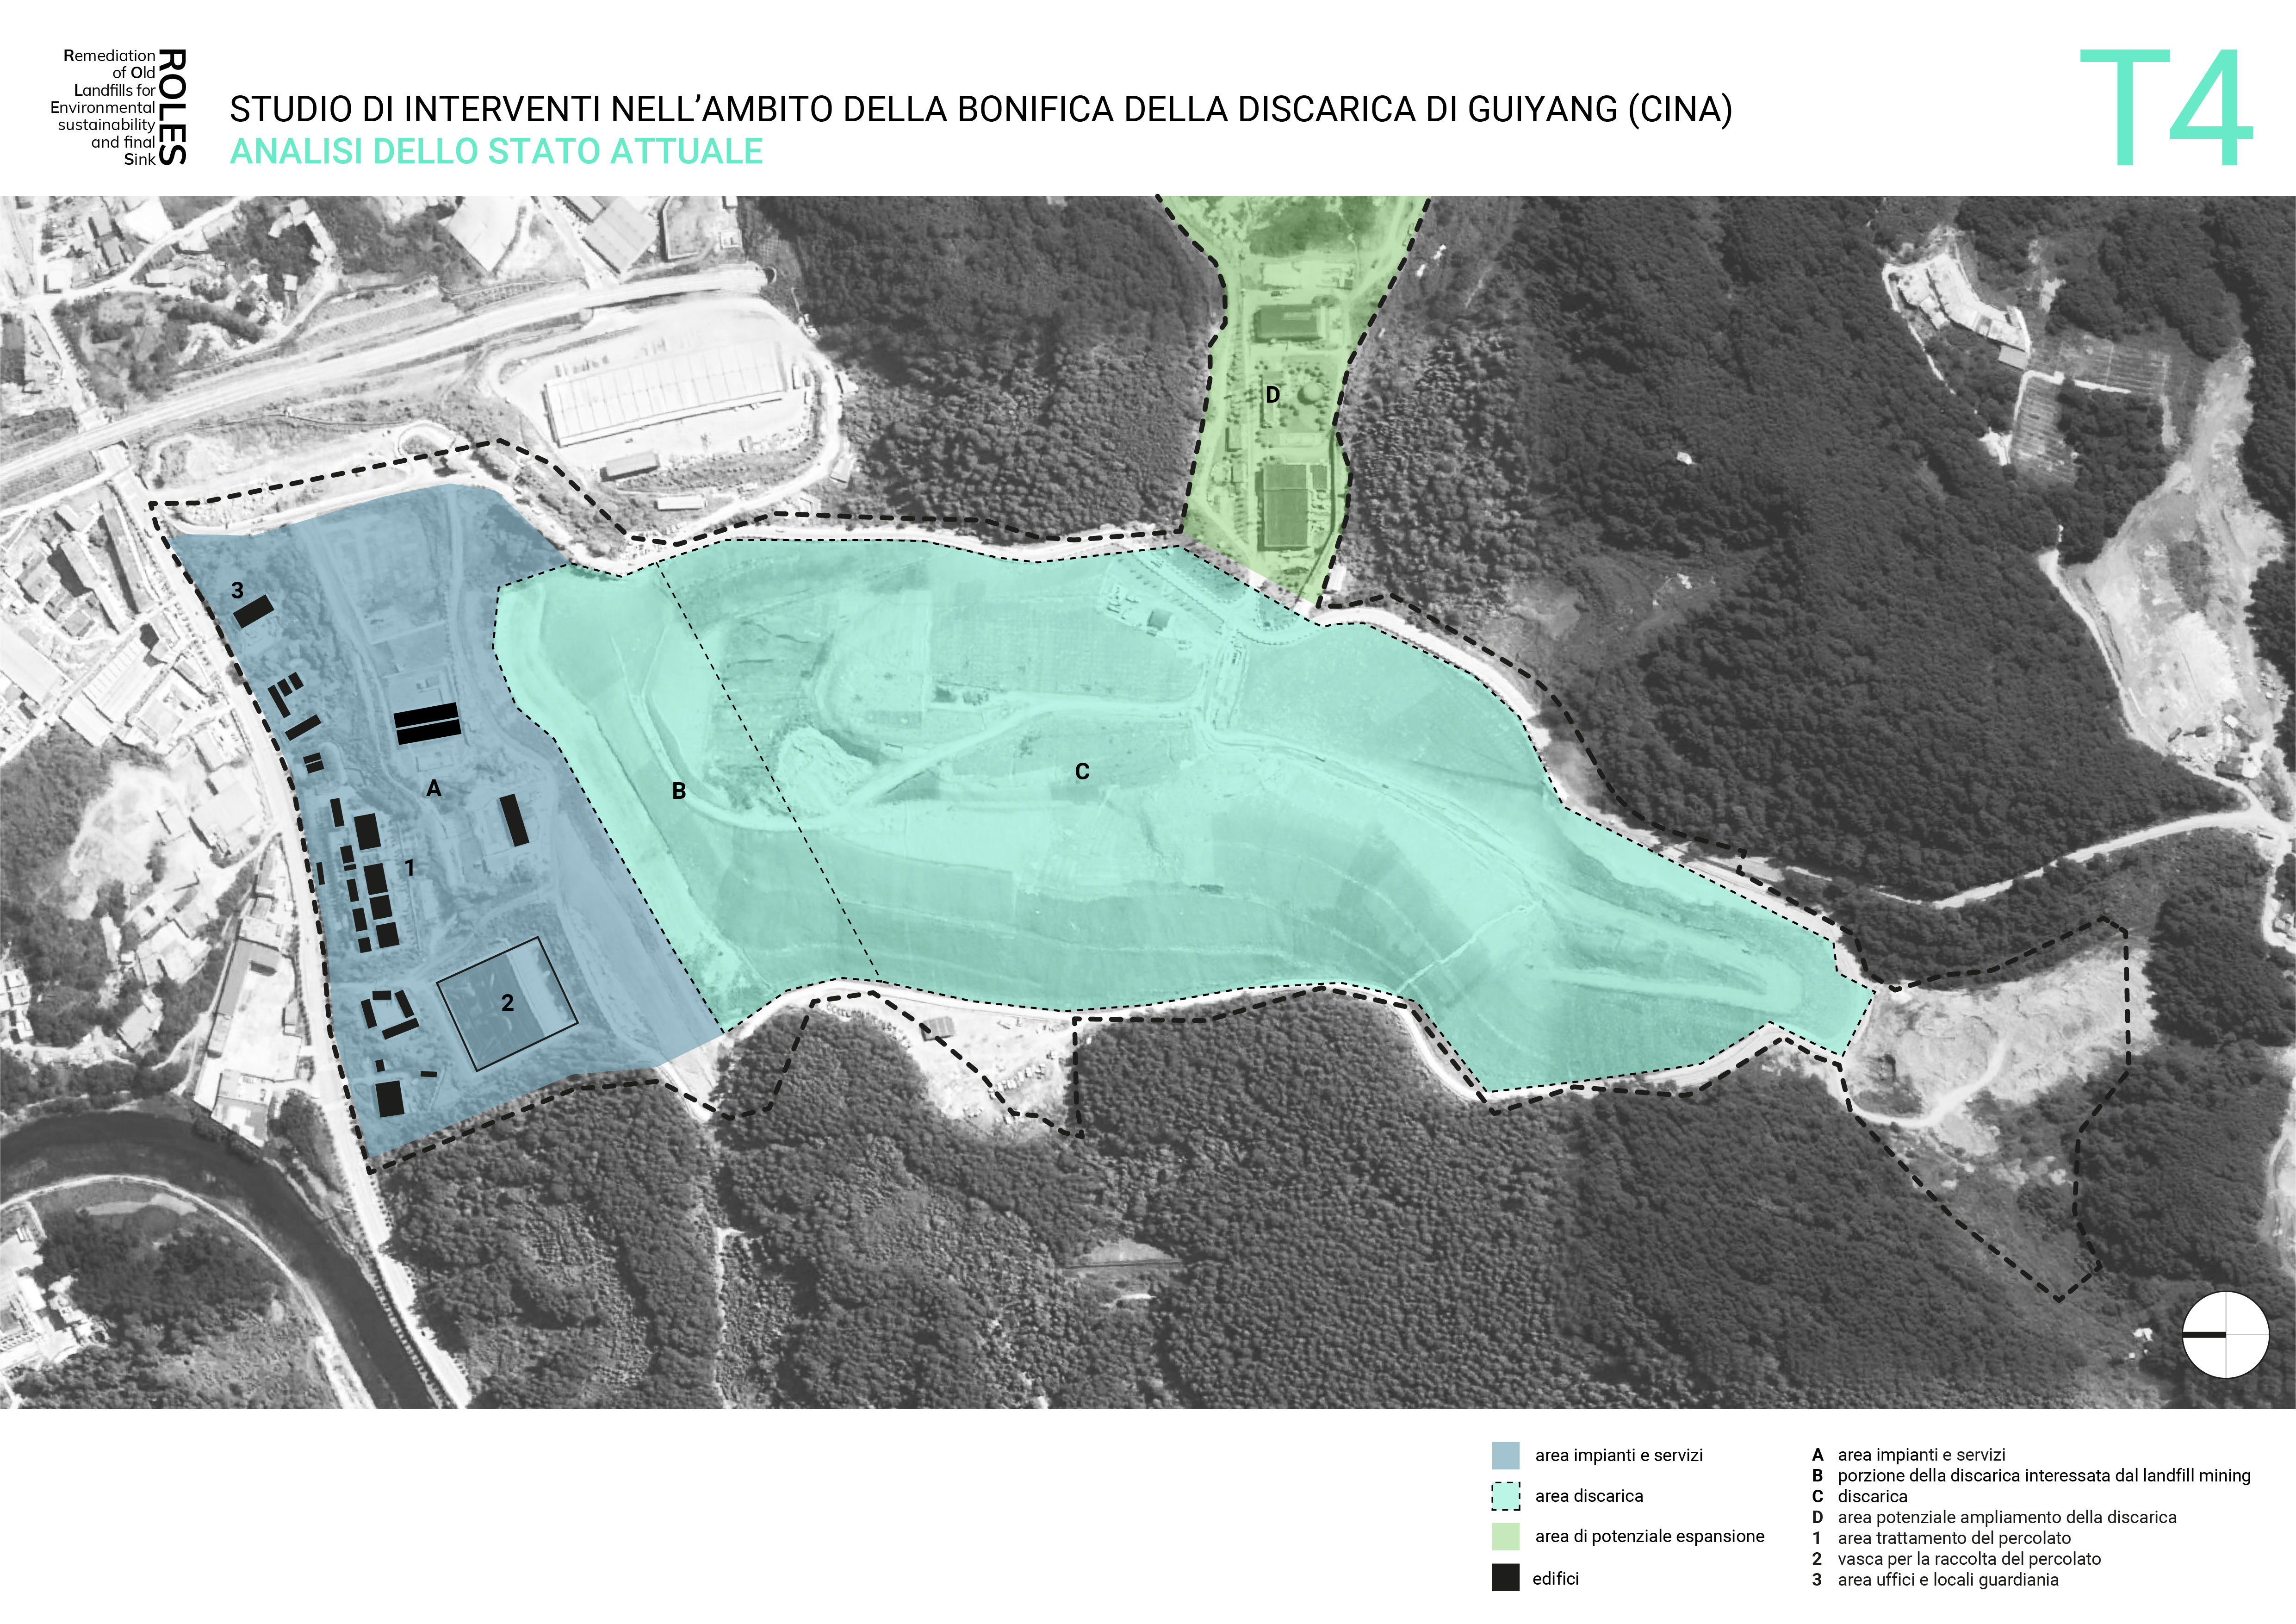 ROLES project </br> Guiyang Landfill / China